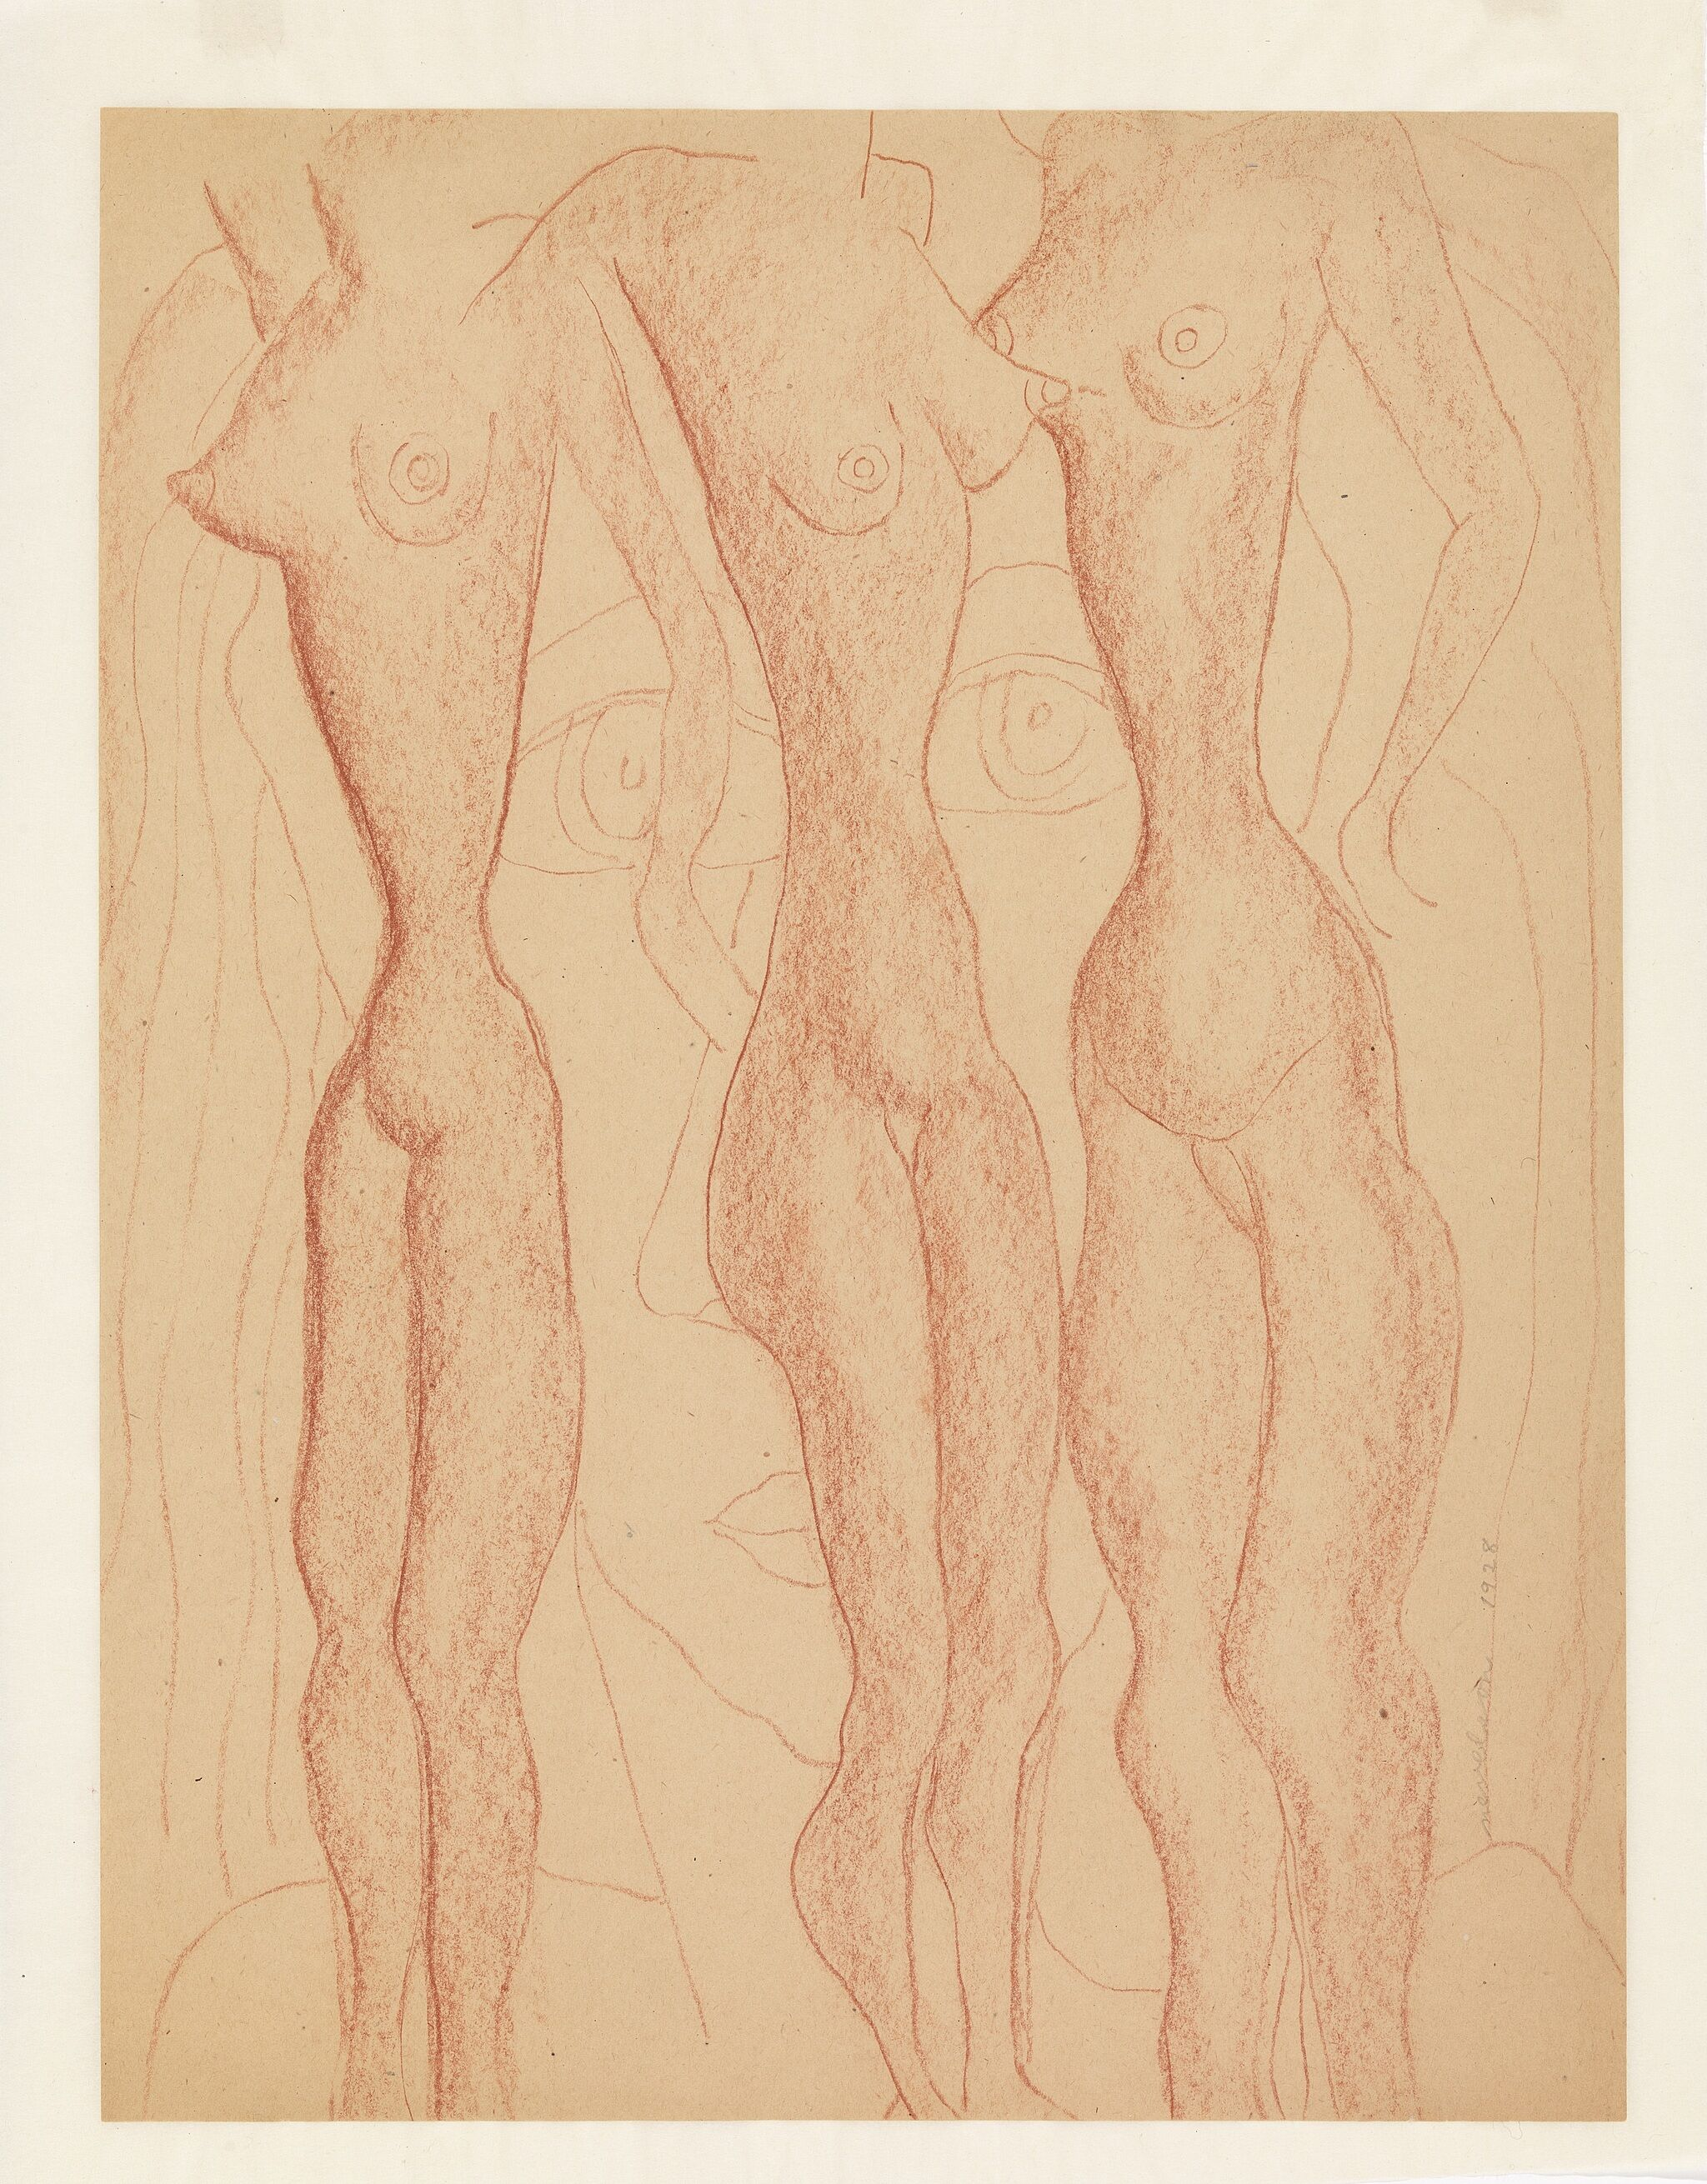 Sketch of elongated nude female bodies.